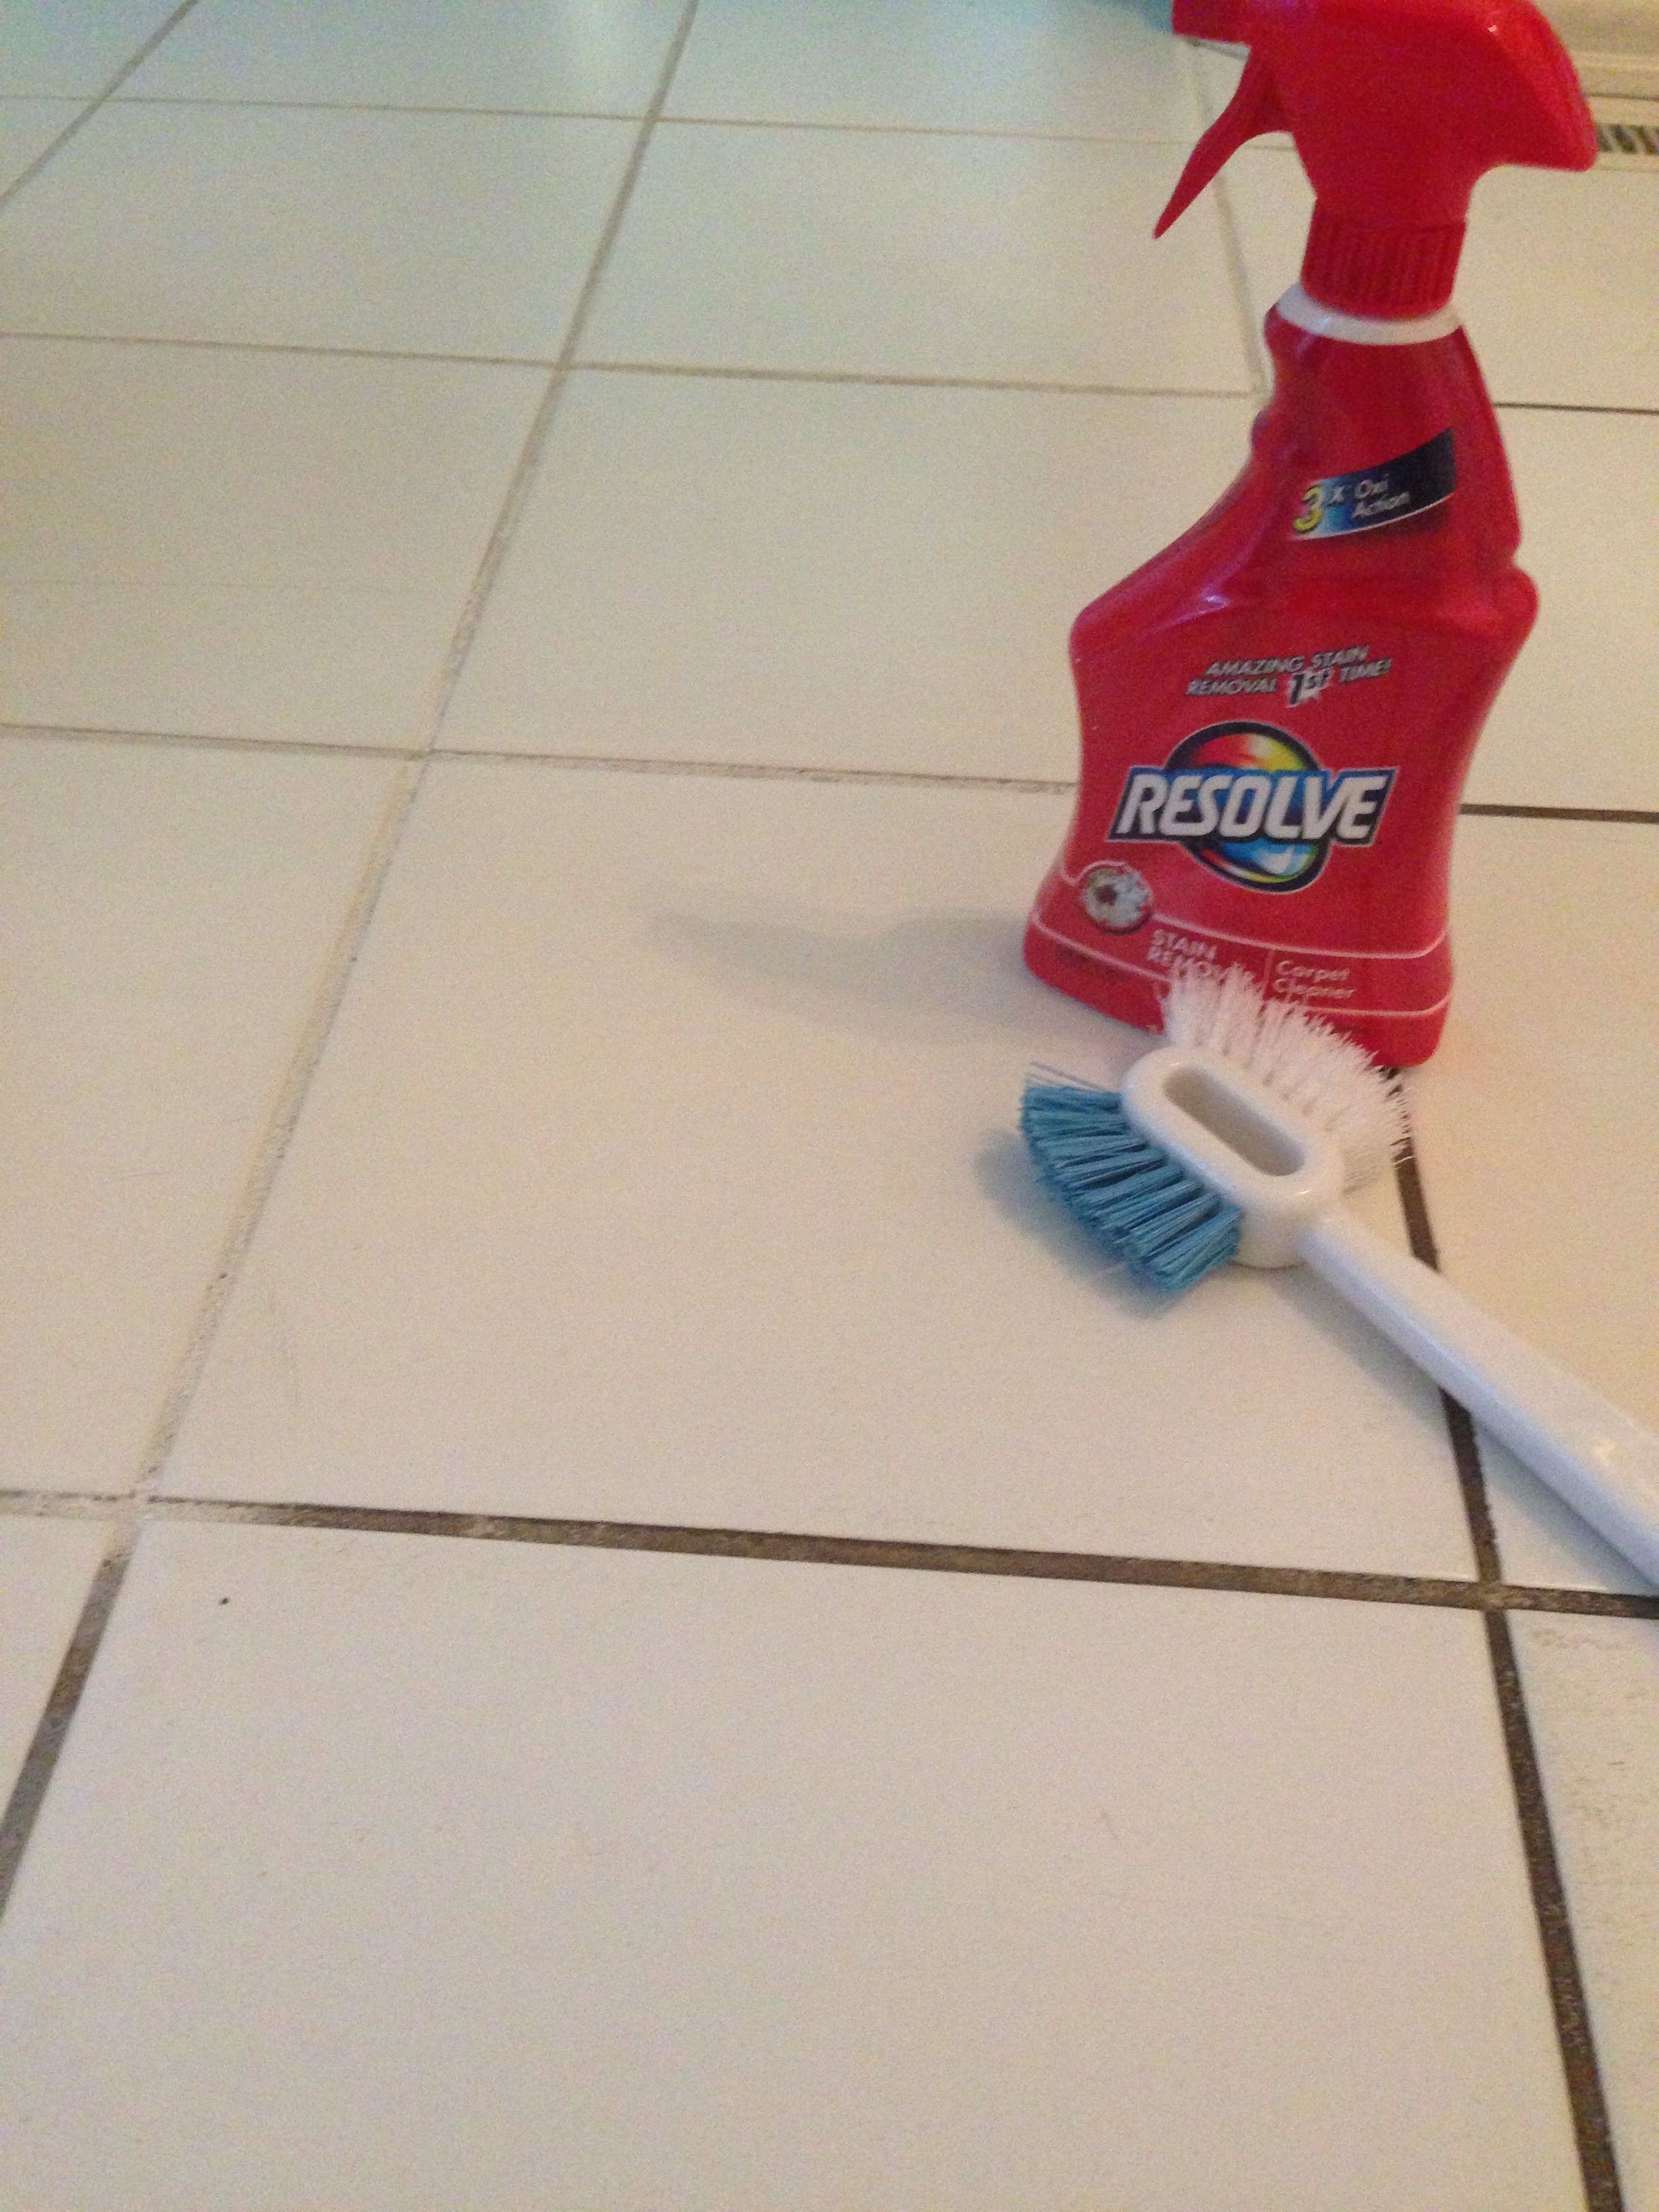 Resolve Carpet Cleaner To Clean Grout Cleaning Hacks Grout Cleaner House Cleaning Tips